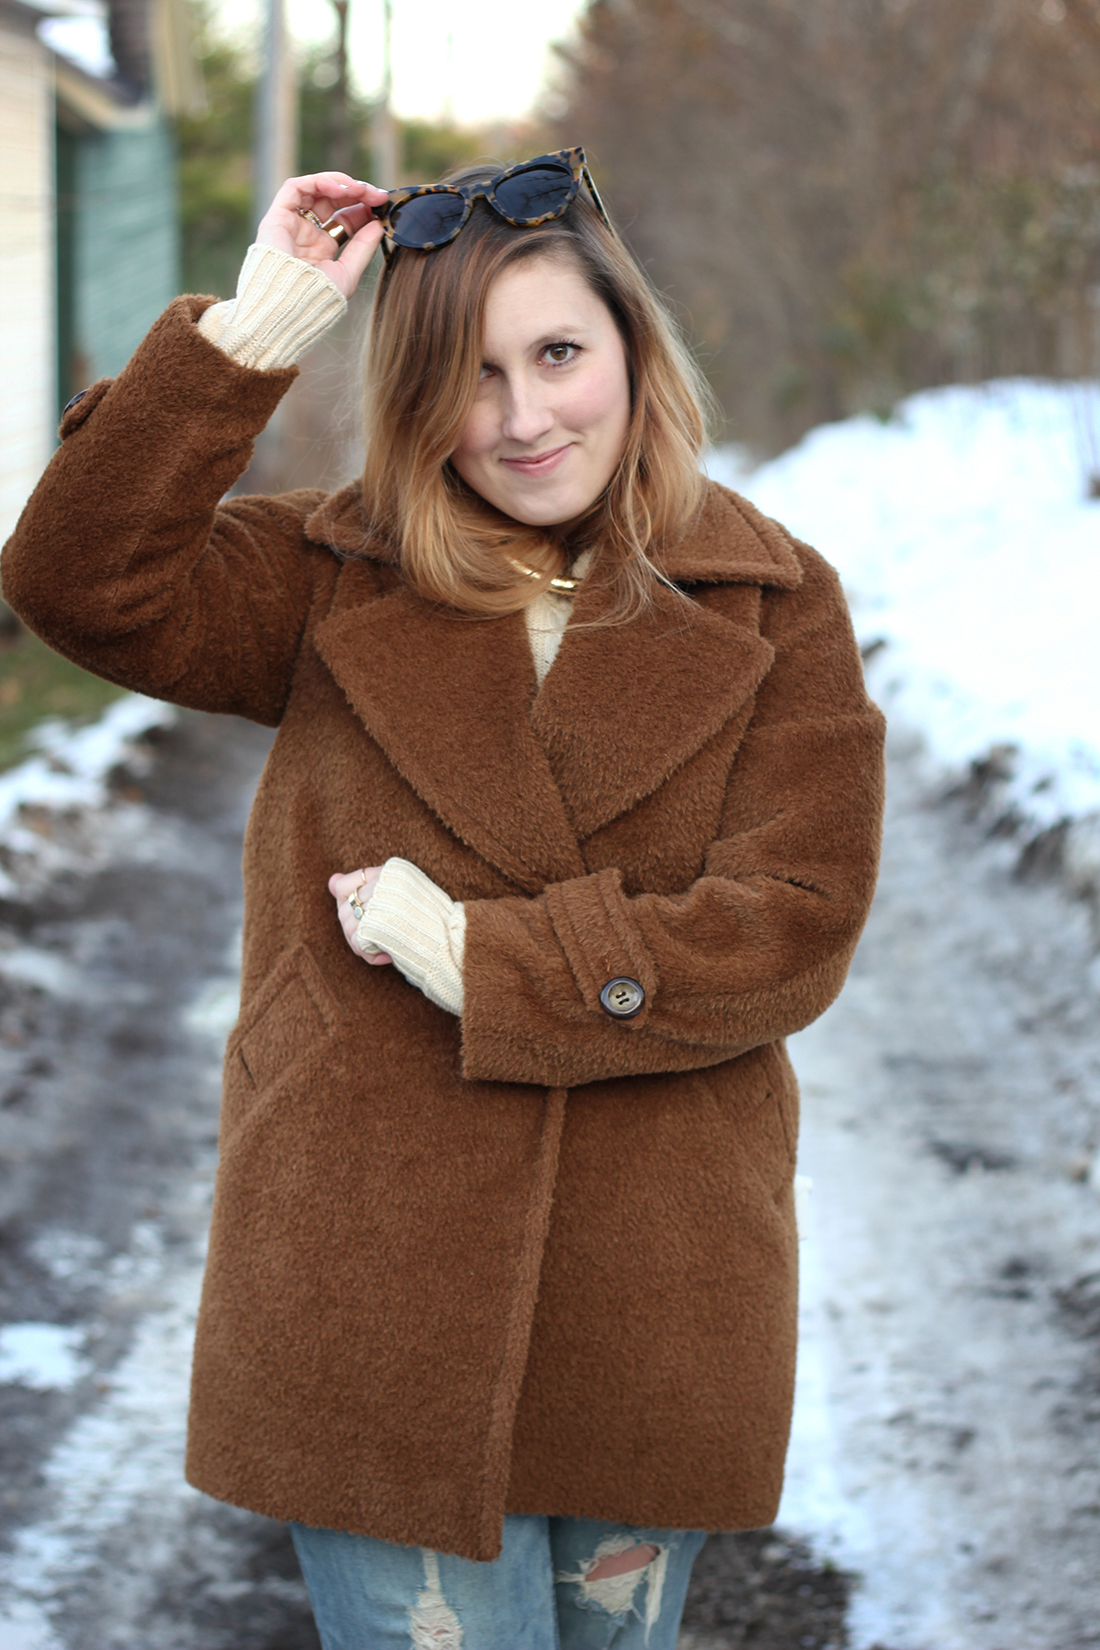 cable-knit-sweater-teddy-bear-coat-6 copy